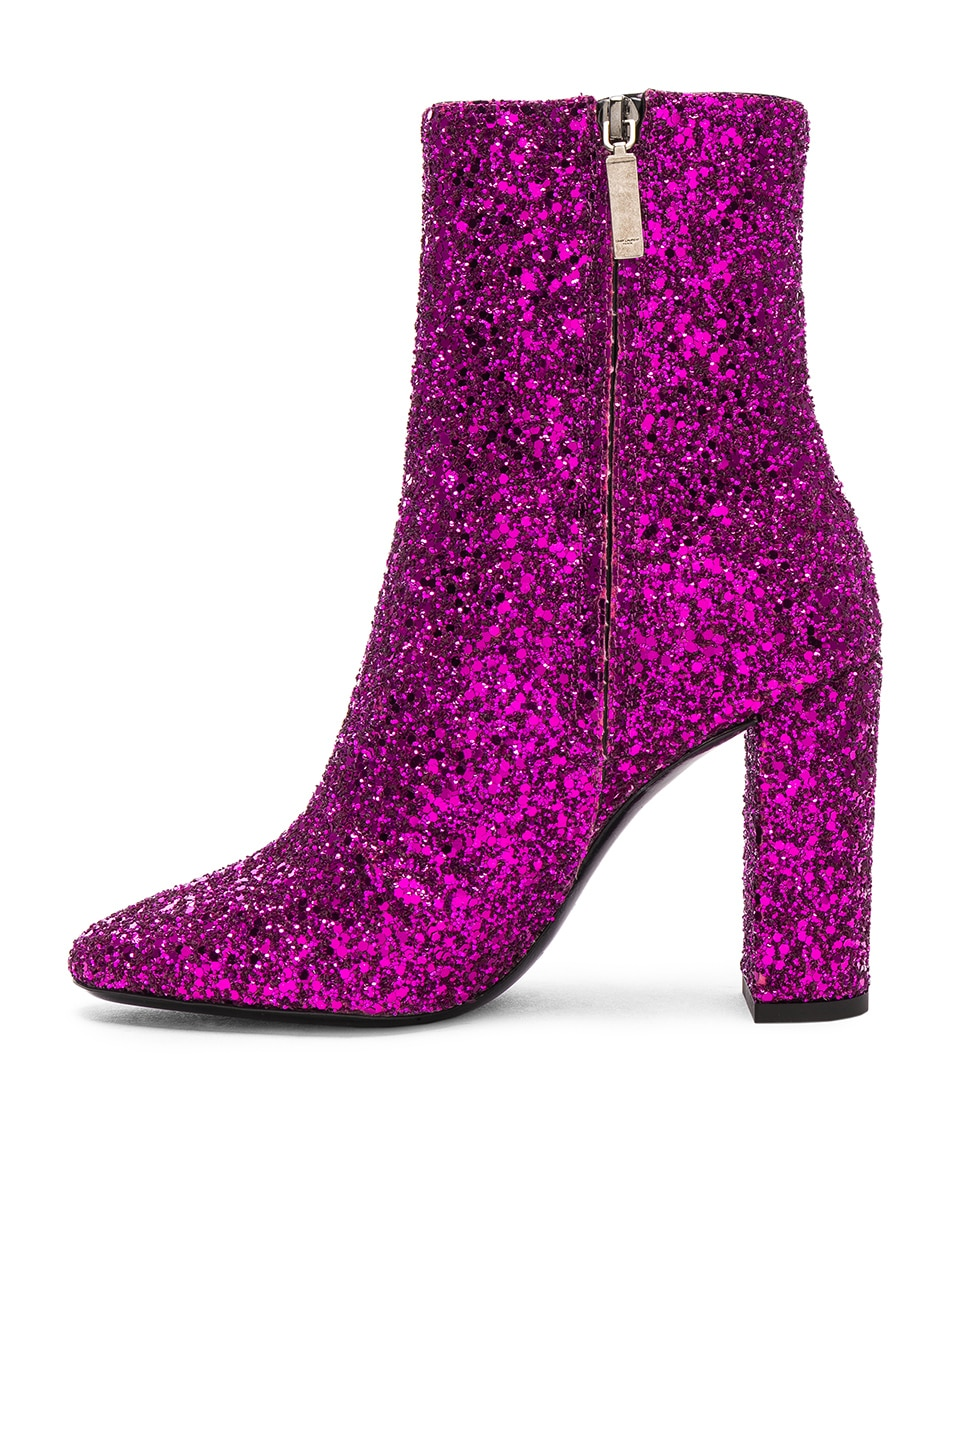 Image 5 of Saint Laurent Glitter Lou Ankle Boots in Fuchsia